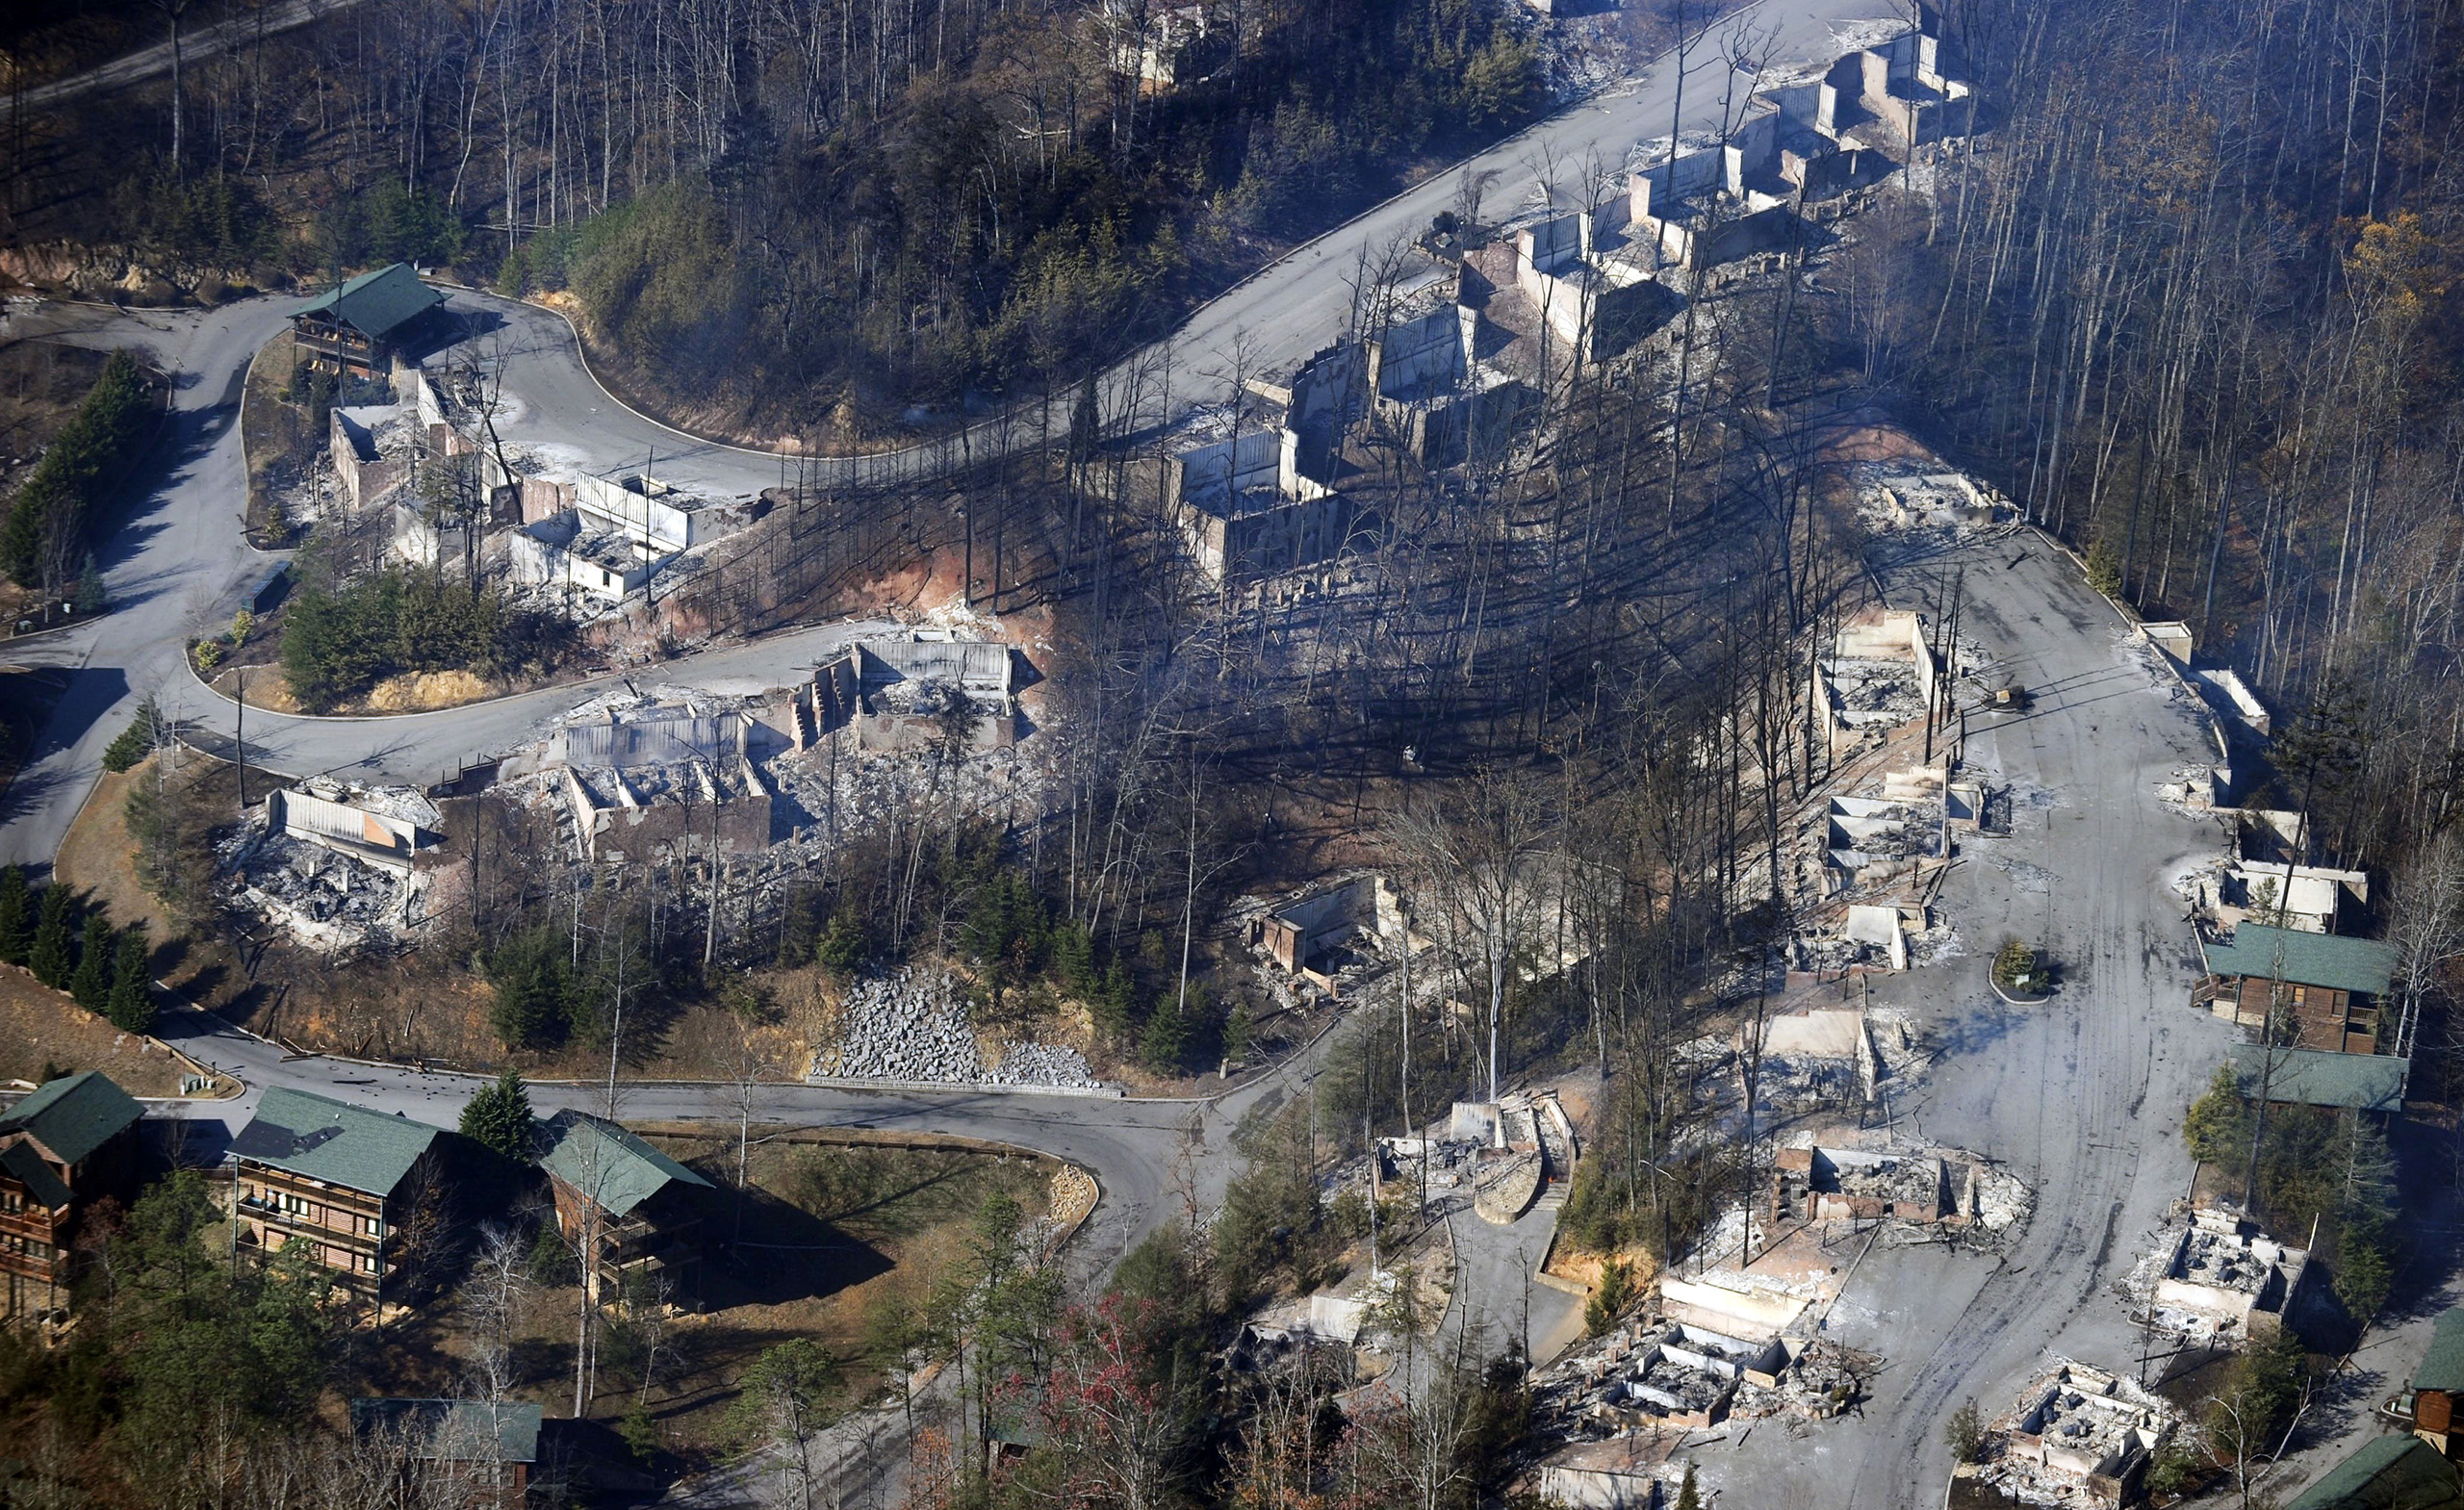 This aerial photo shows, destroyed homes, many burned down to the foundation the day after a wildfire in Gatlinburg, Tenn., on Nov. 29, 2016.